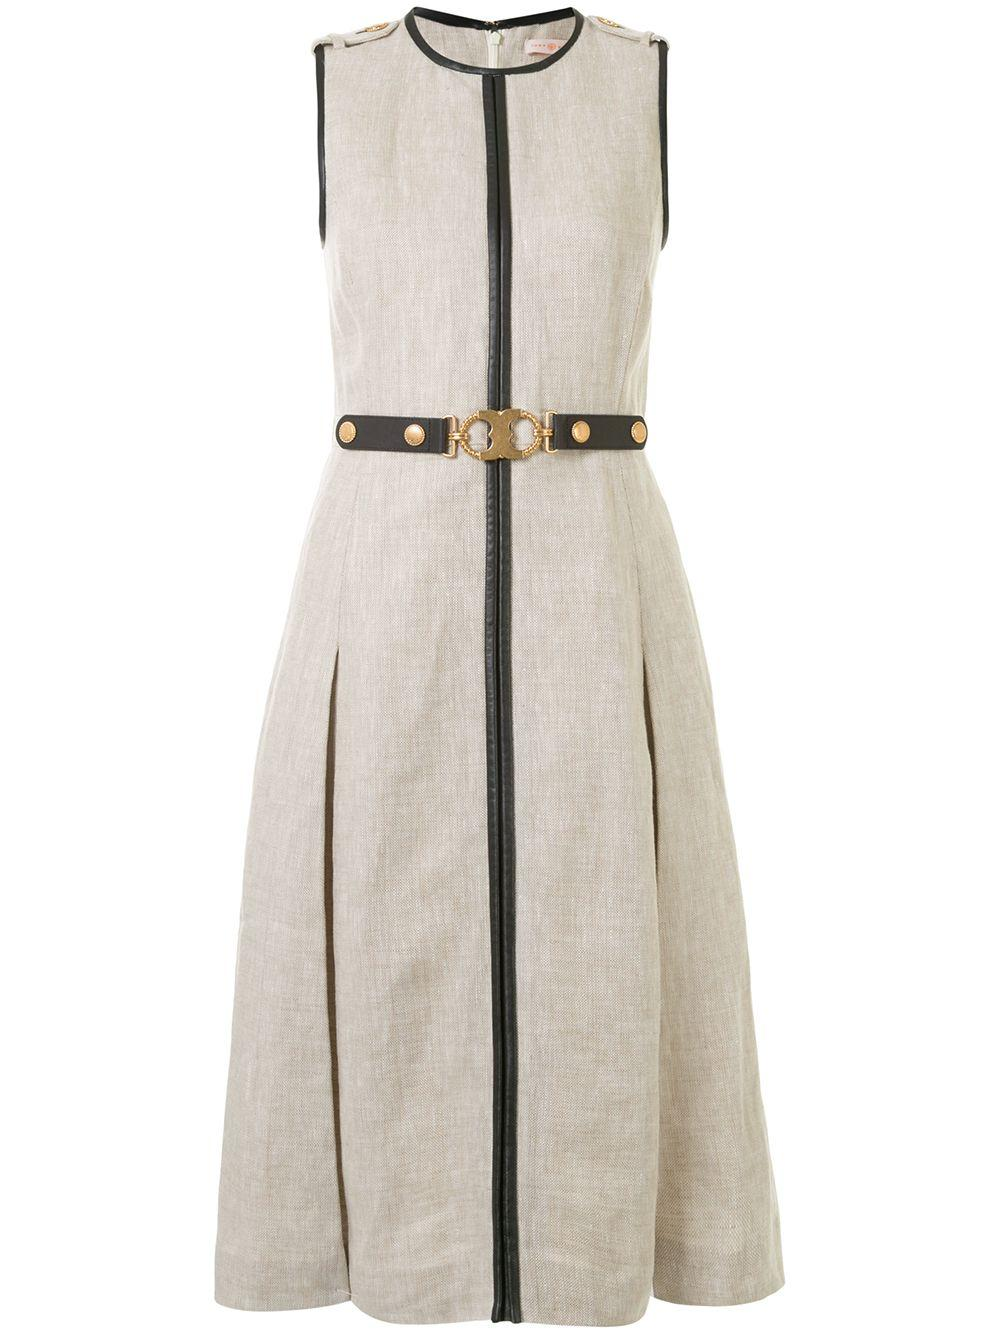 Leather Trimmed Linen Dress